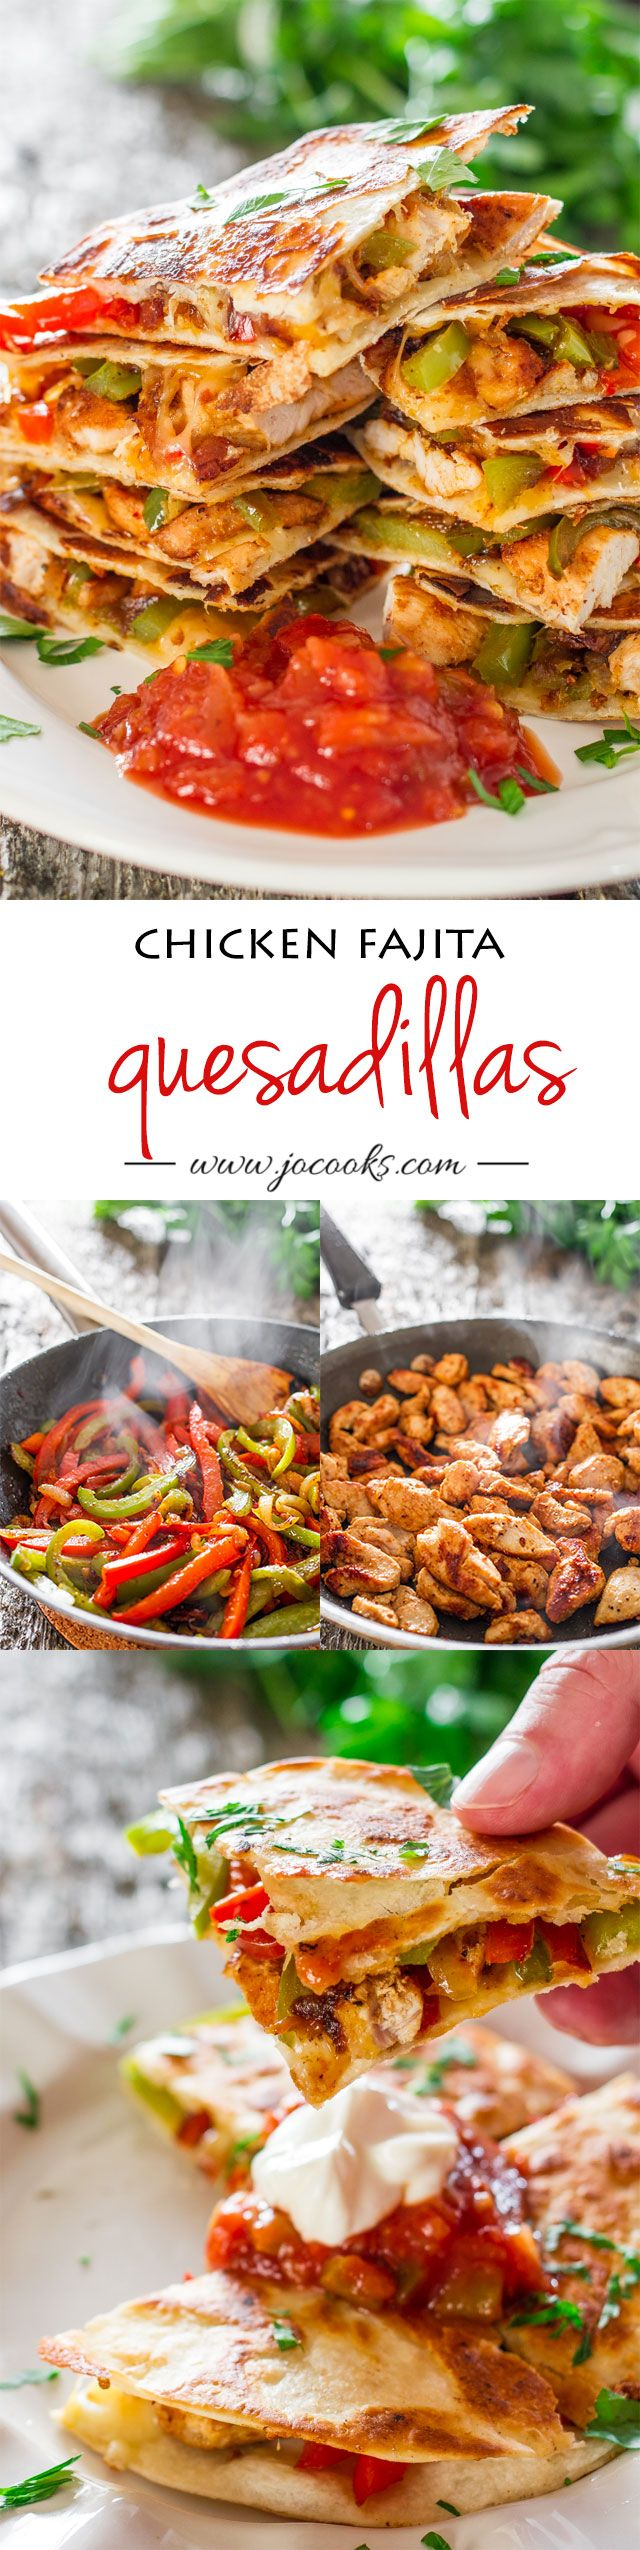 Chicken Fajita Quesadillas  [ MexicanConnexionforTile.com ] #food #Talavera #Mexican